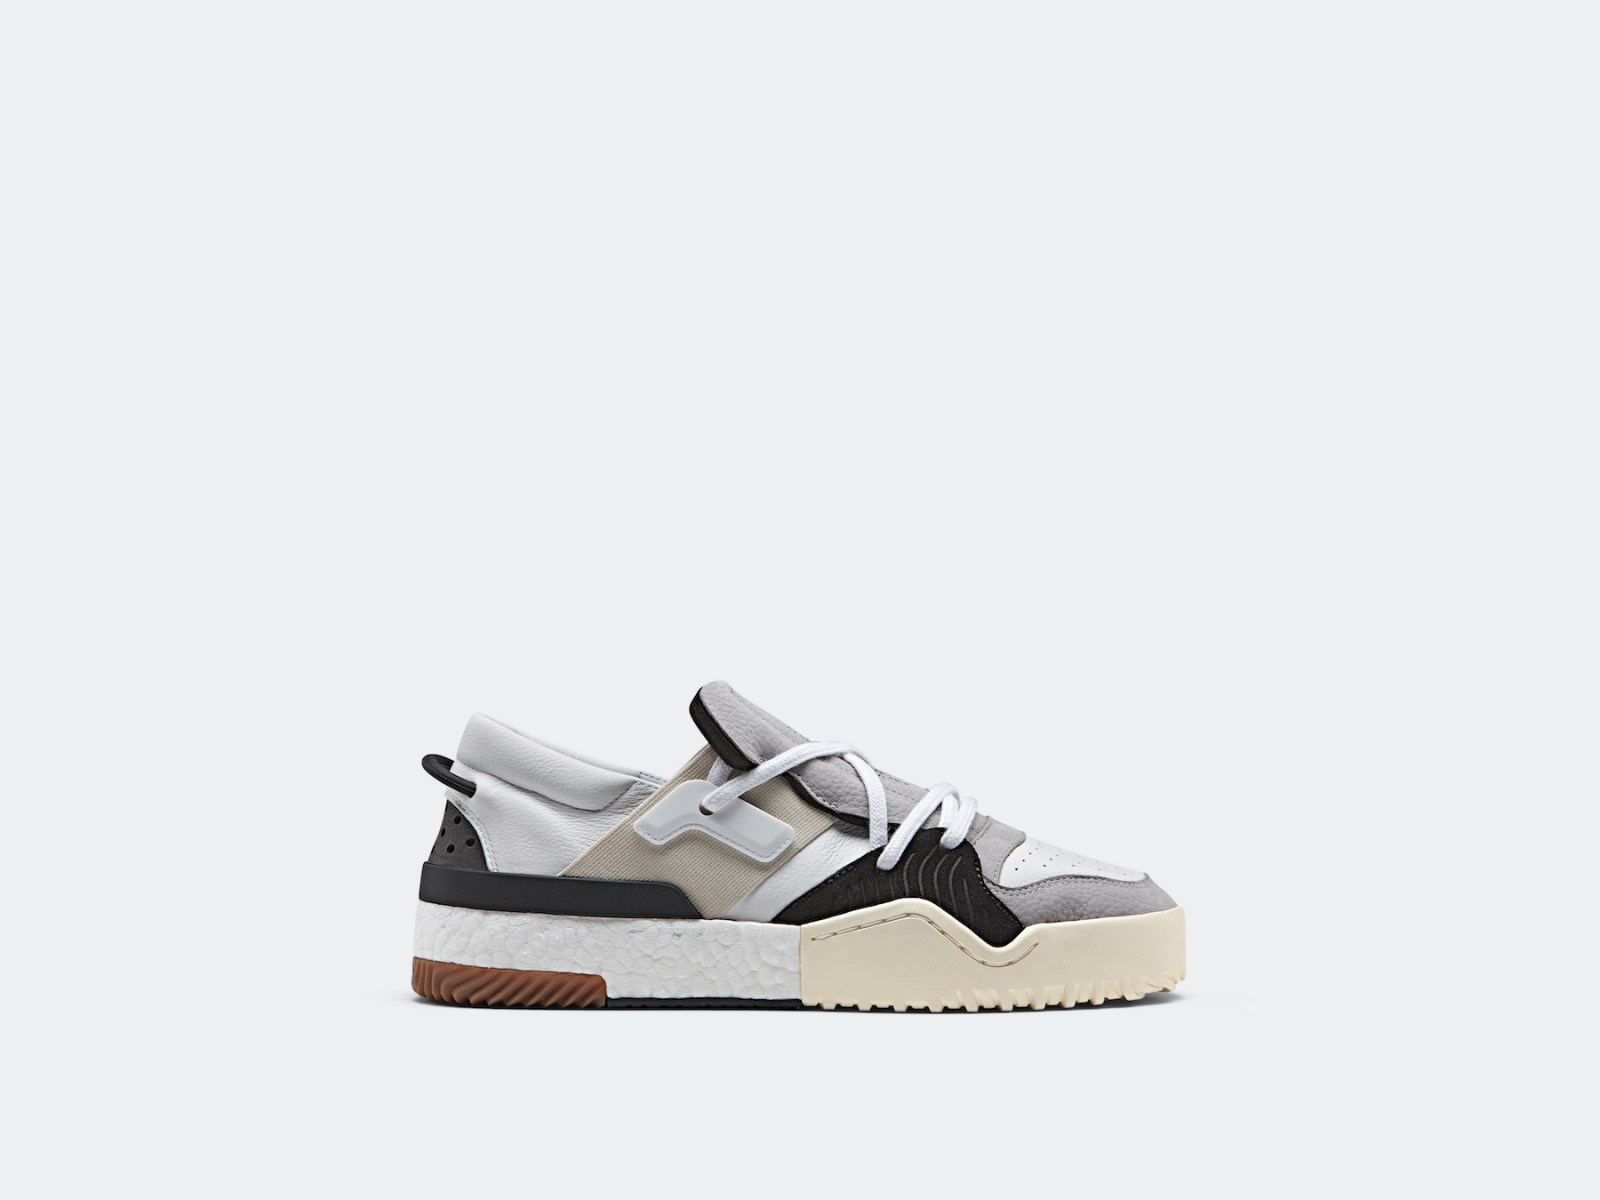 promo code 2c197 29d41 ... Drop 2 adidas Originals by Alexander Wang 聯名系列Season 2 第三波新作正式發佈 ...